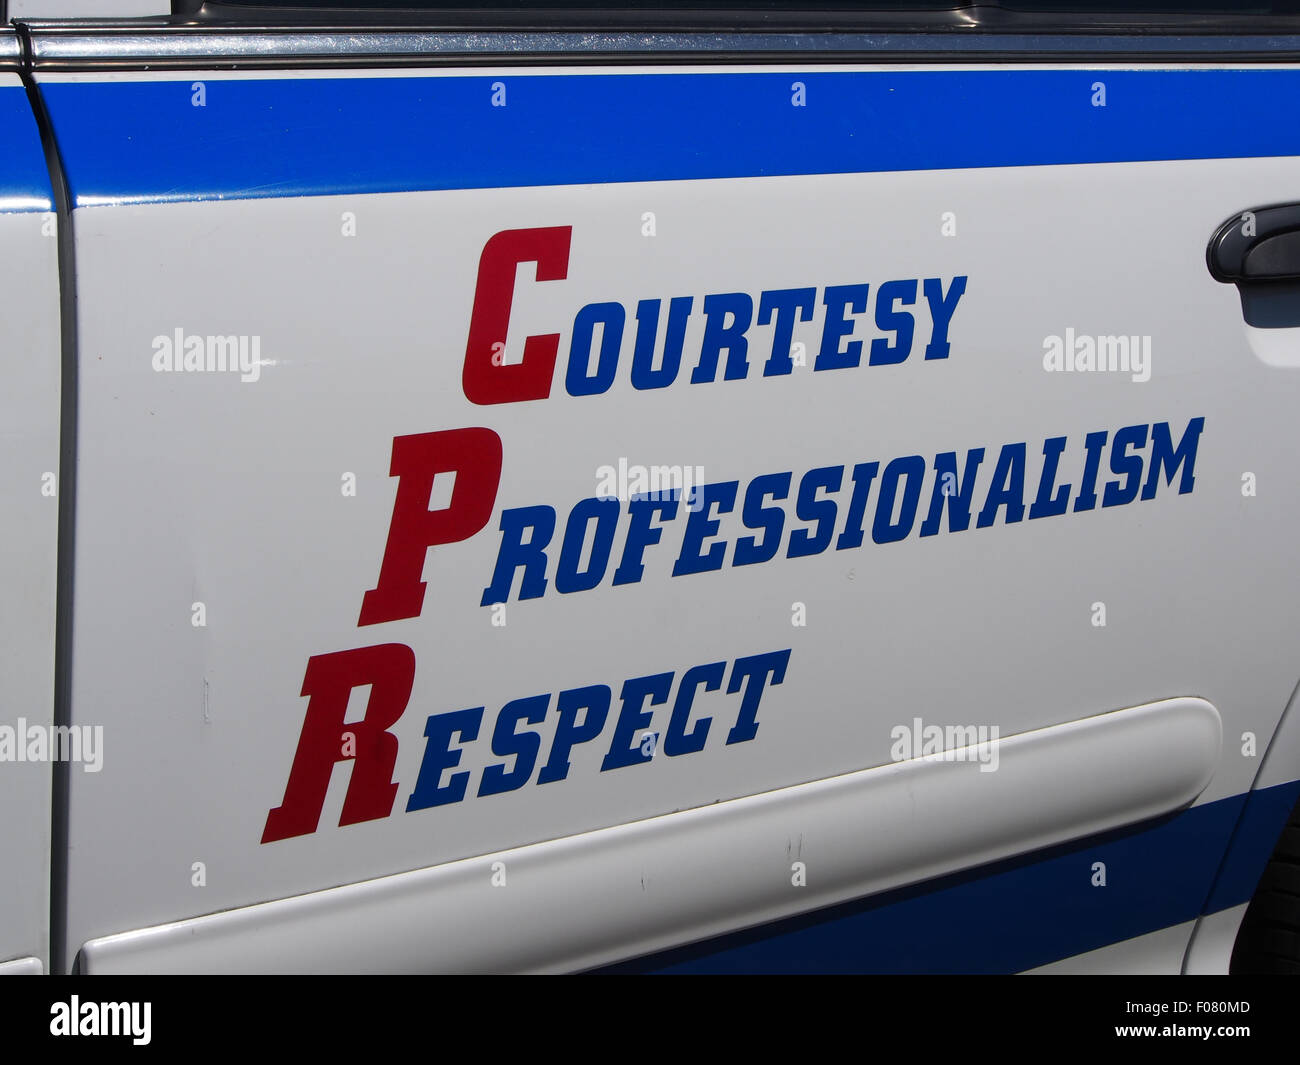 courtesy professionalism respect, the motto of the NYPD, on the side of a New York Police Department car - Stock Image